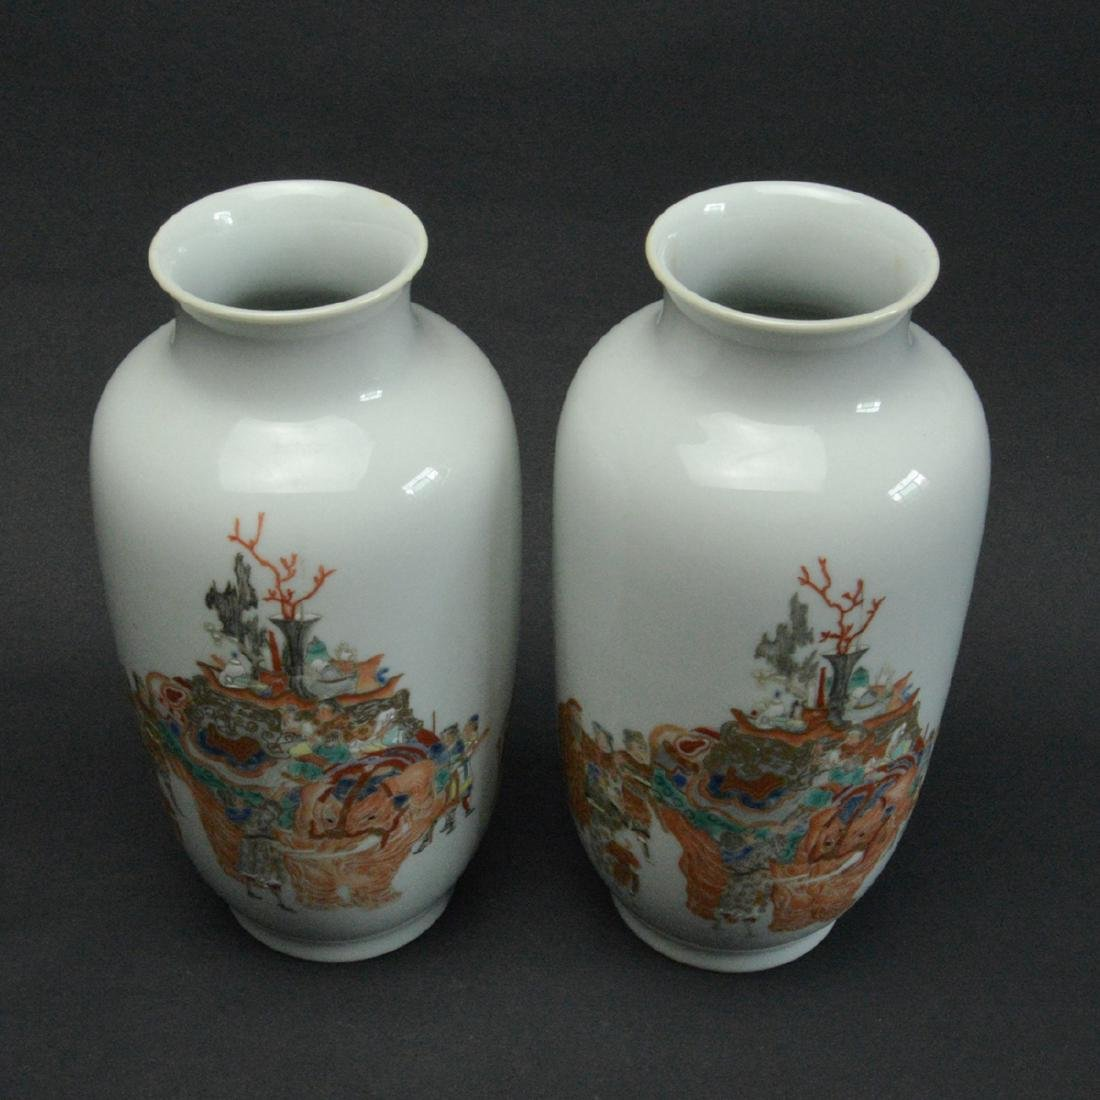 CHINESE FAMILLE ROSE PORCELAIN VASES, PAIR - 2